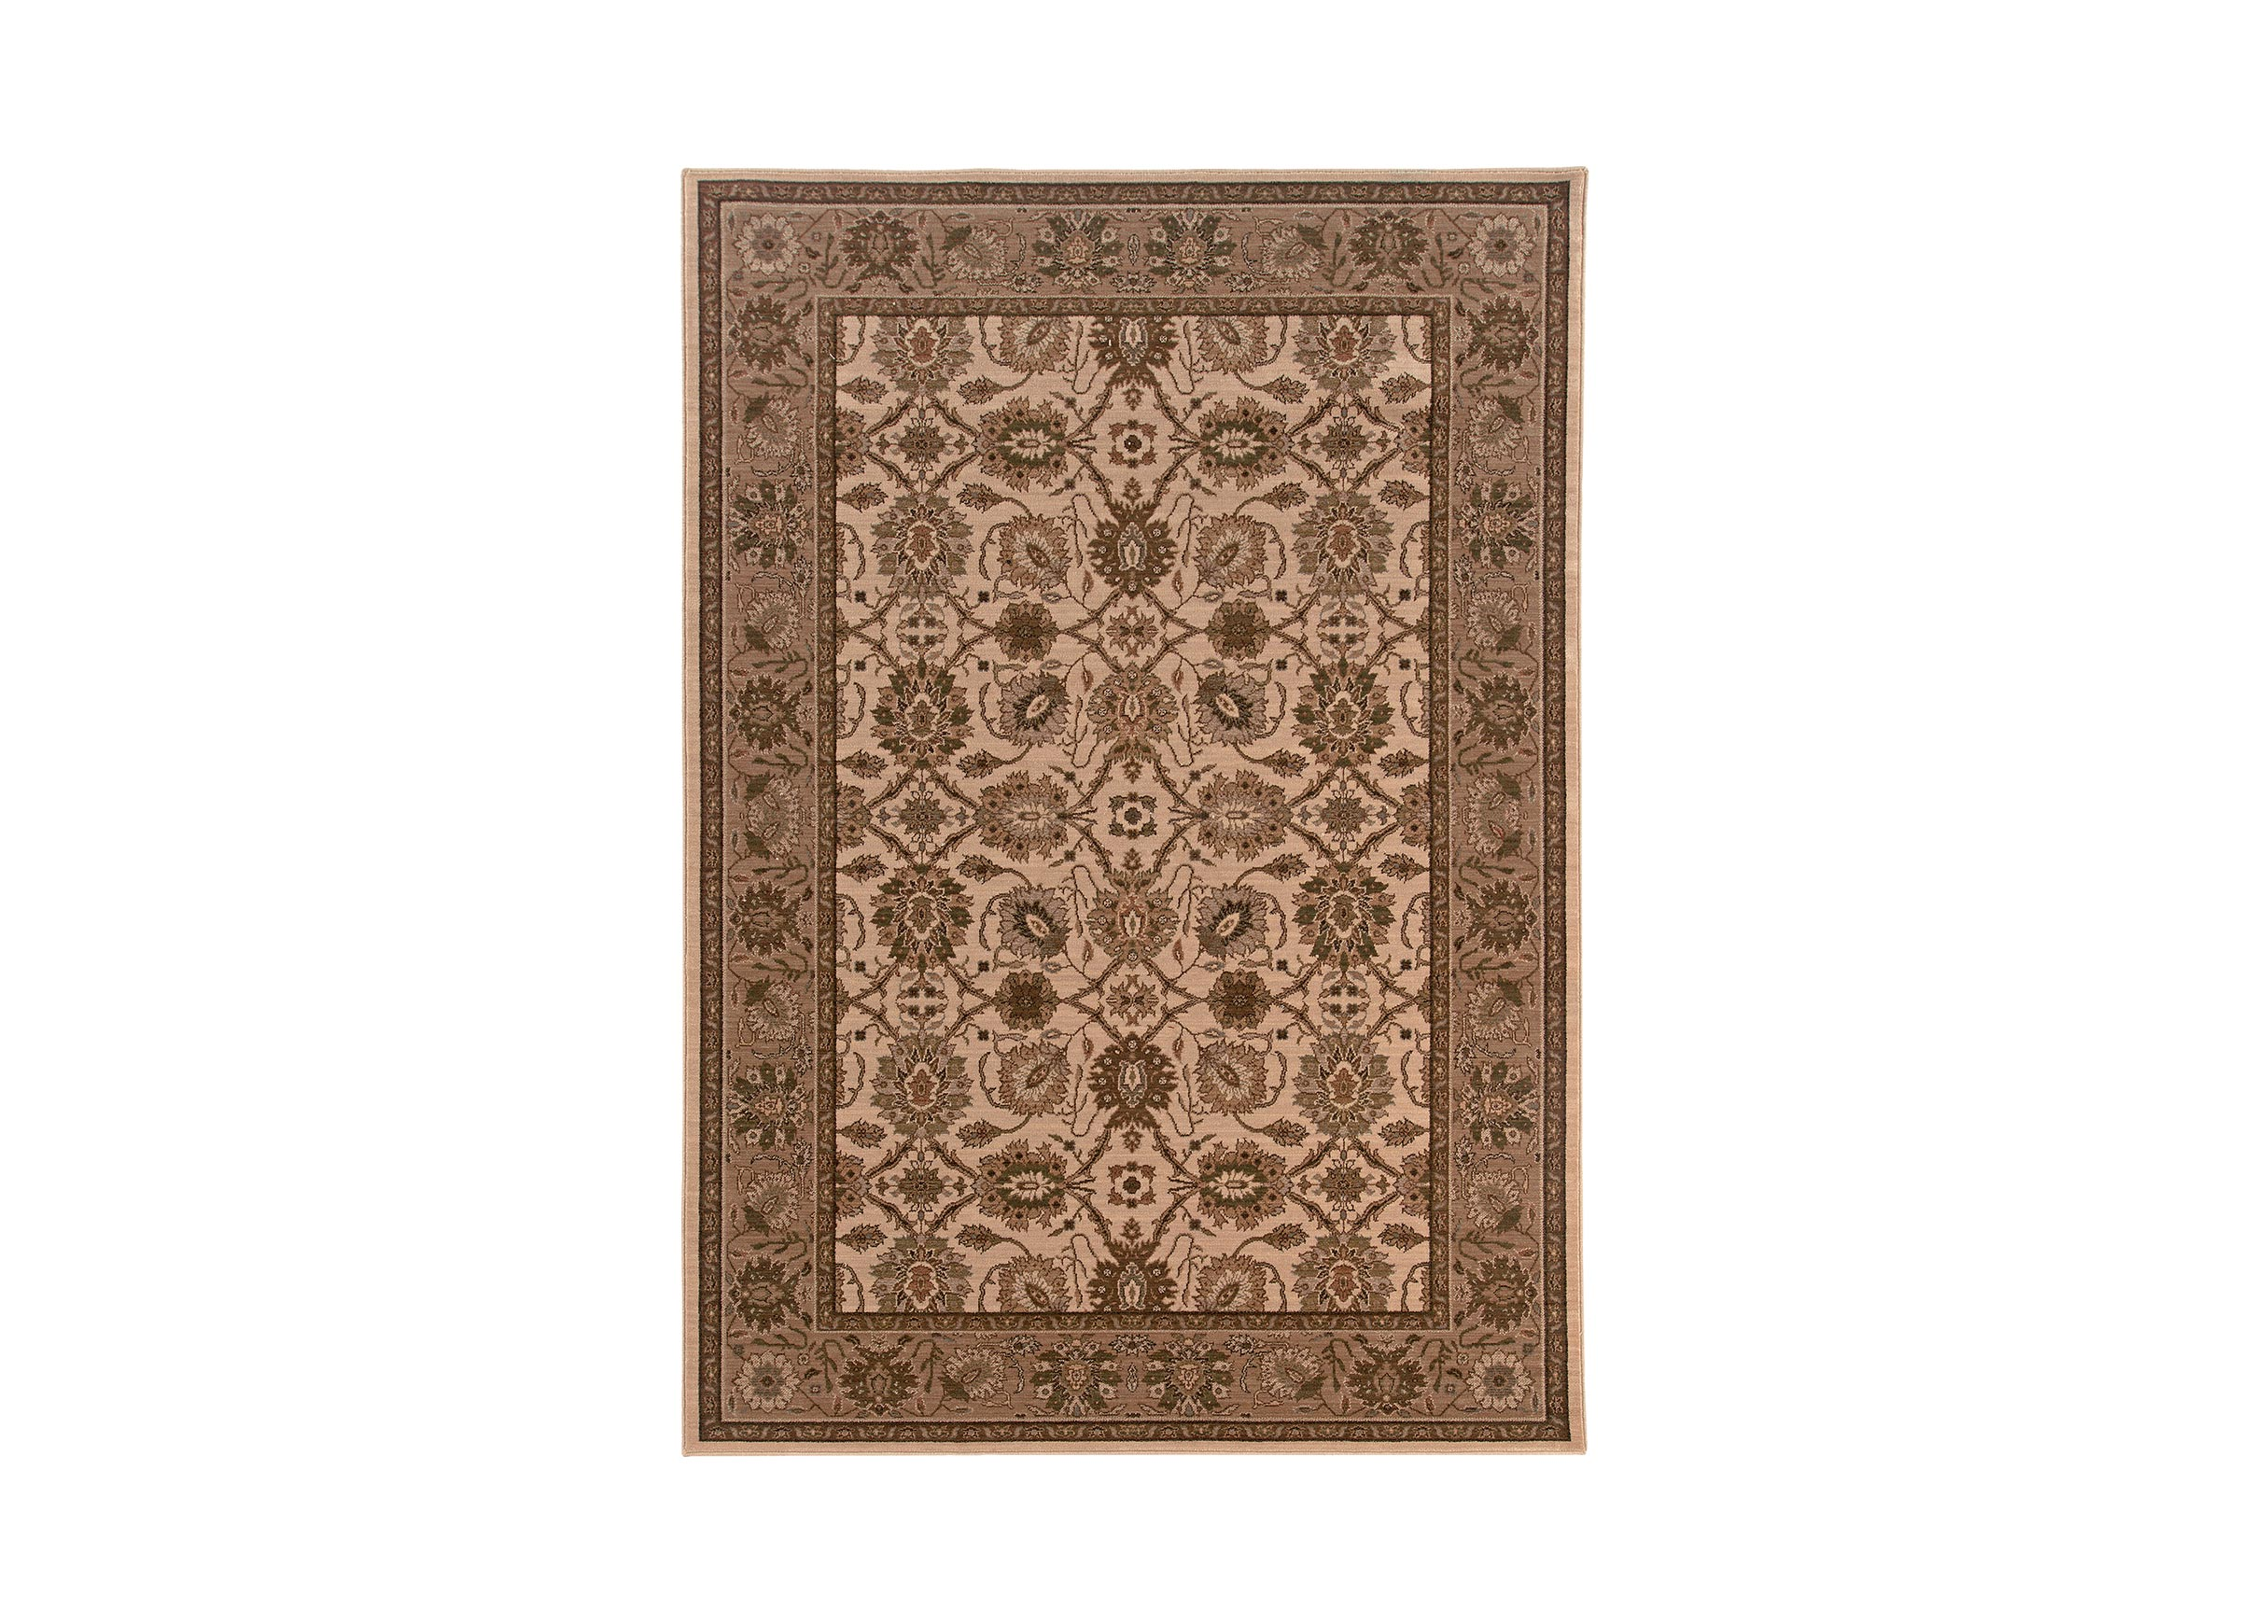 Sultanabad Area Rug Ivory Tan Traditional Patterned